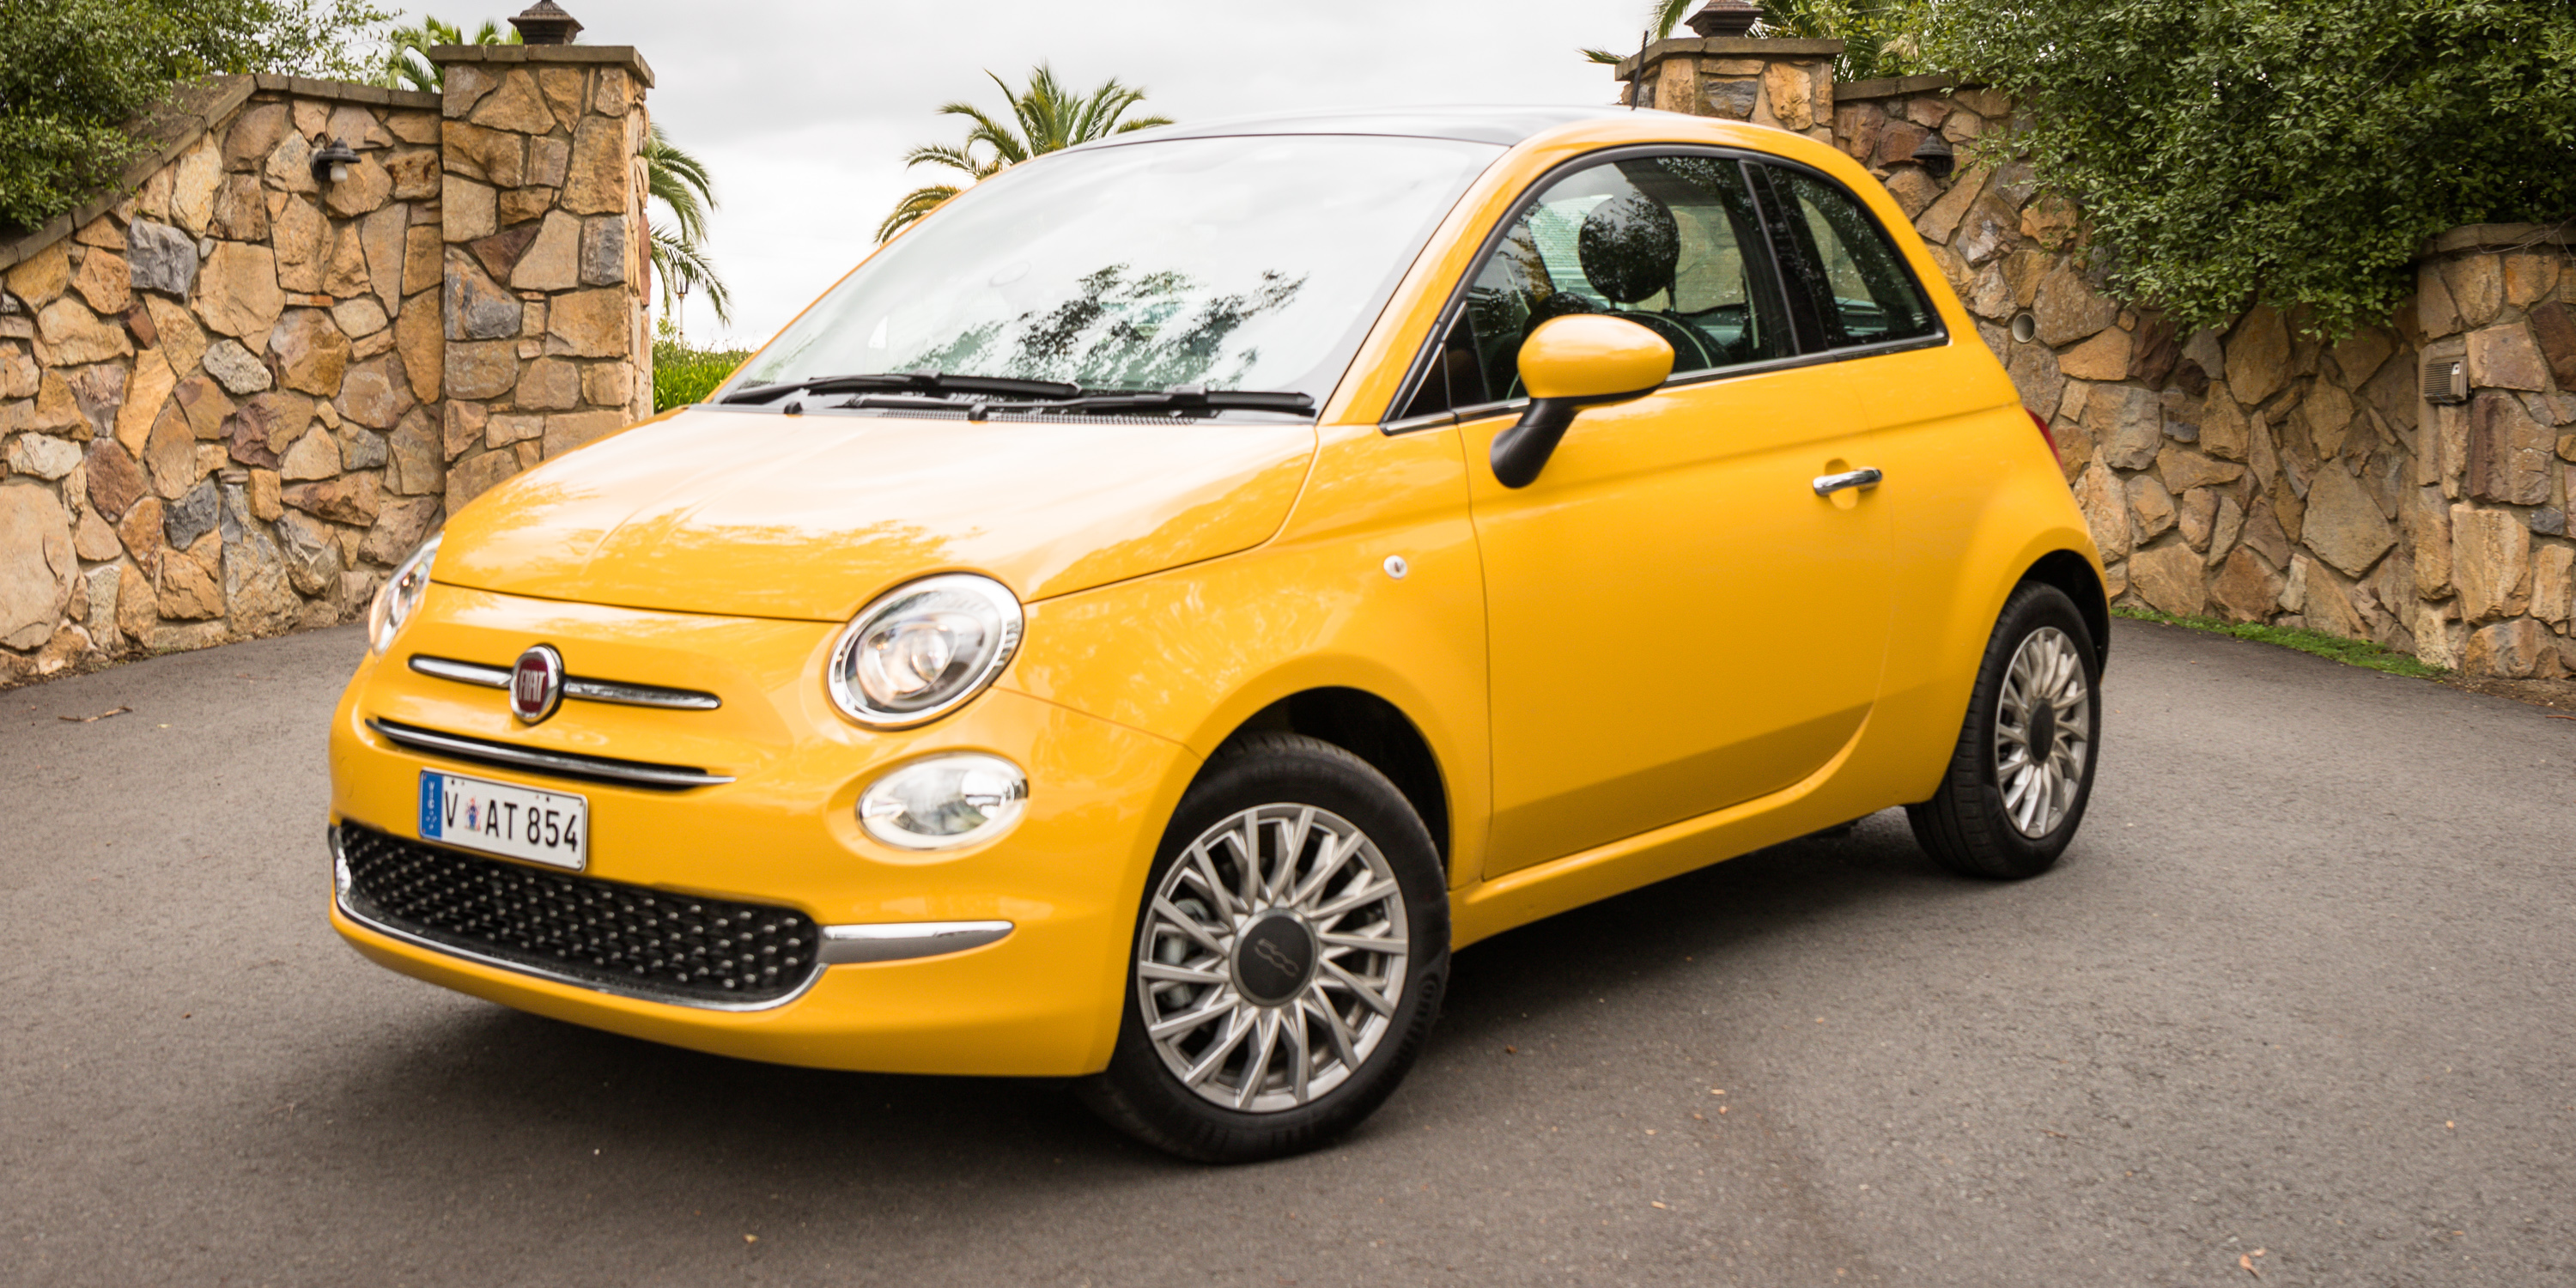 2016 Fiat 500 Review - Photos